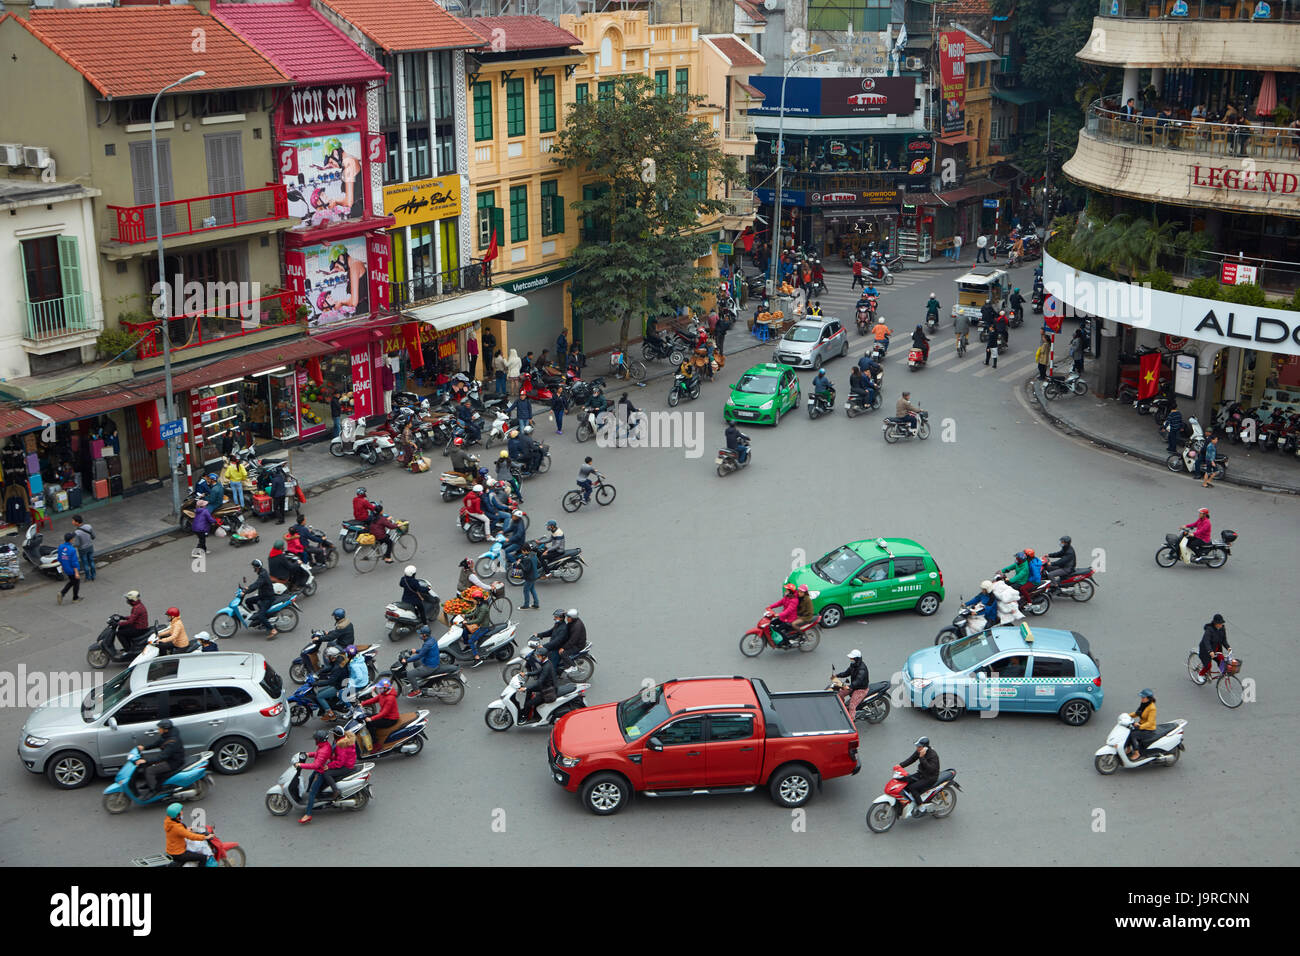 Crazy traffic at busy intersection by Hoan Kiem Lake and Old Quarter, Hanoi, Vietnam Stock Photo